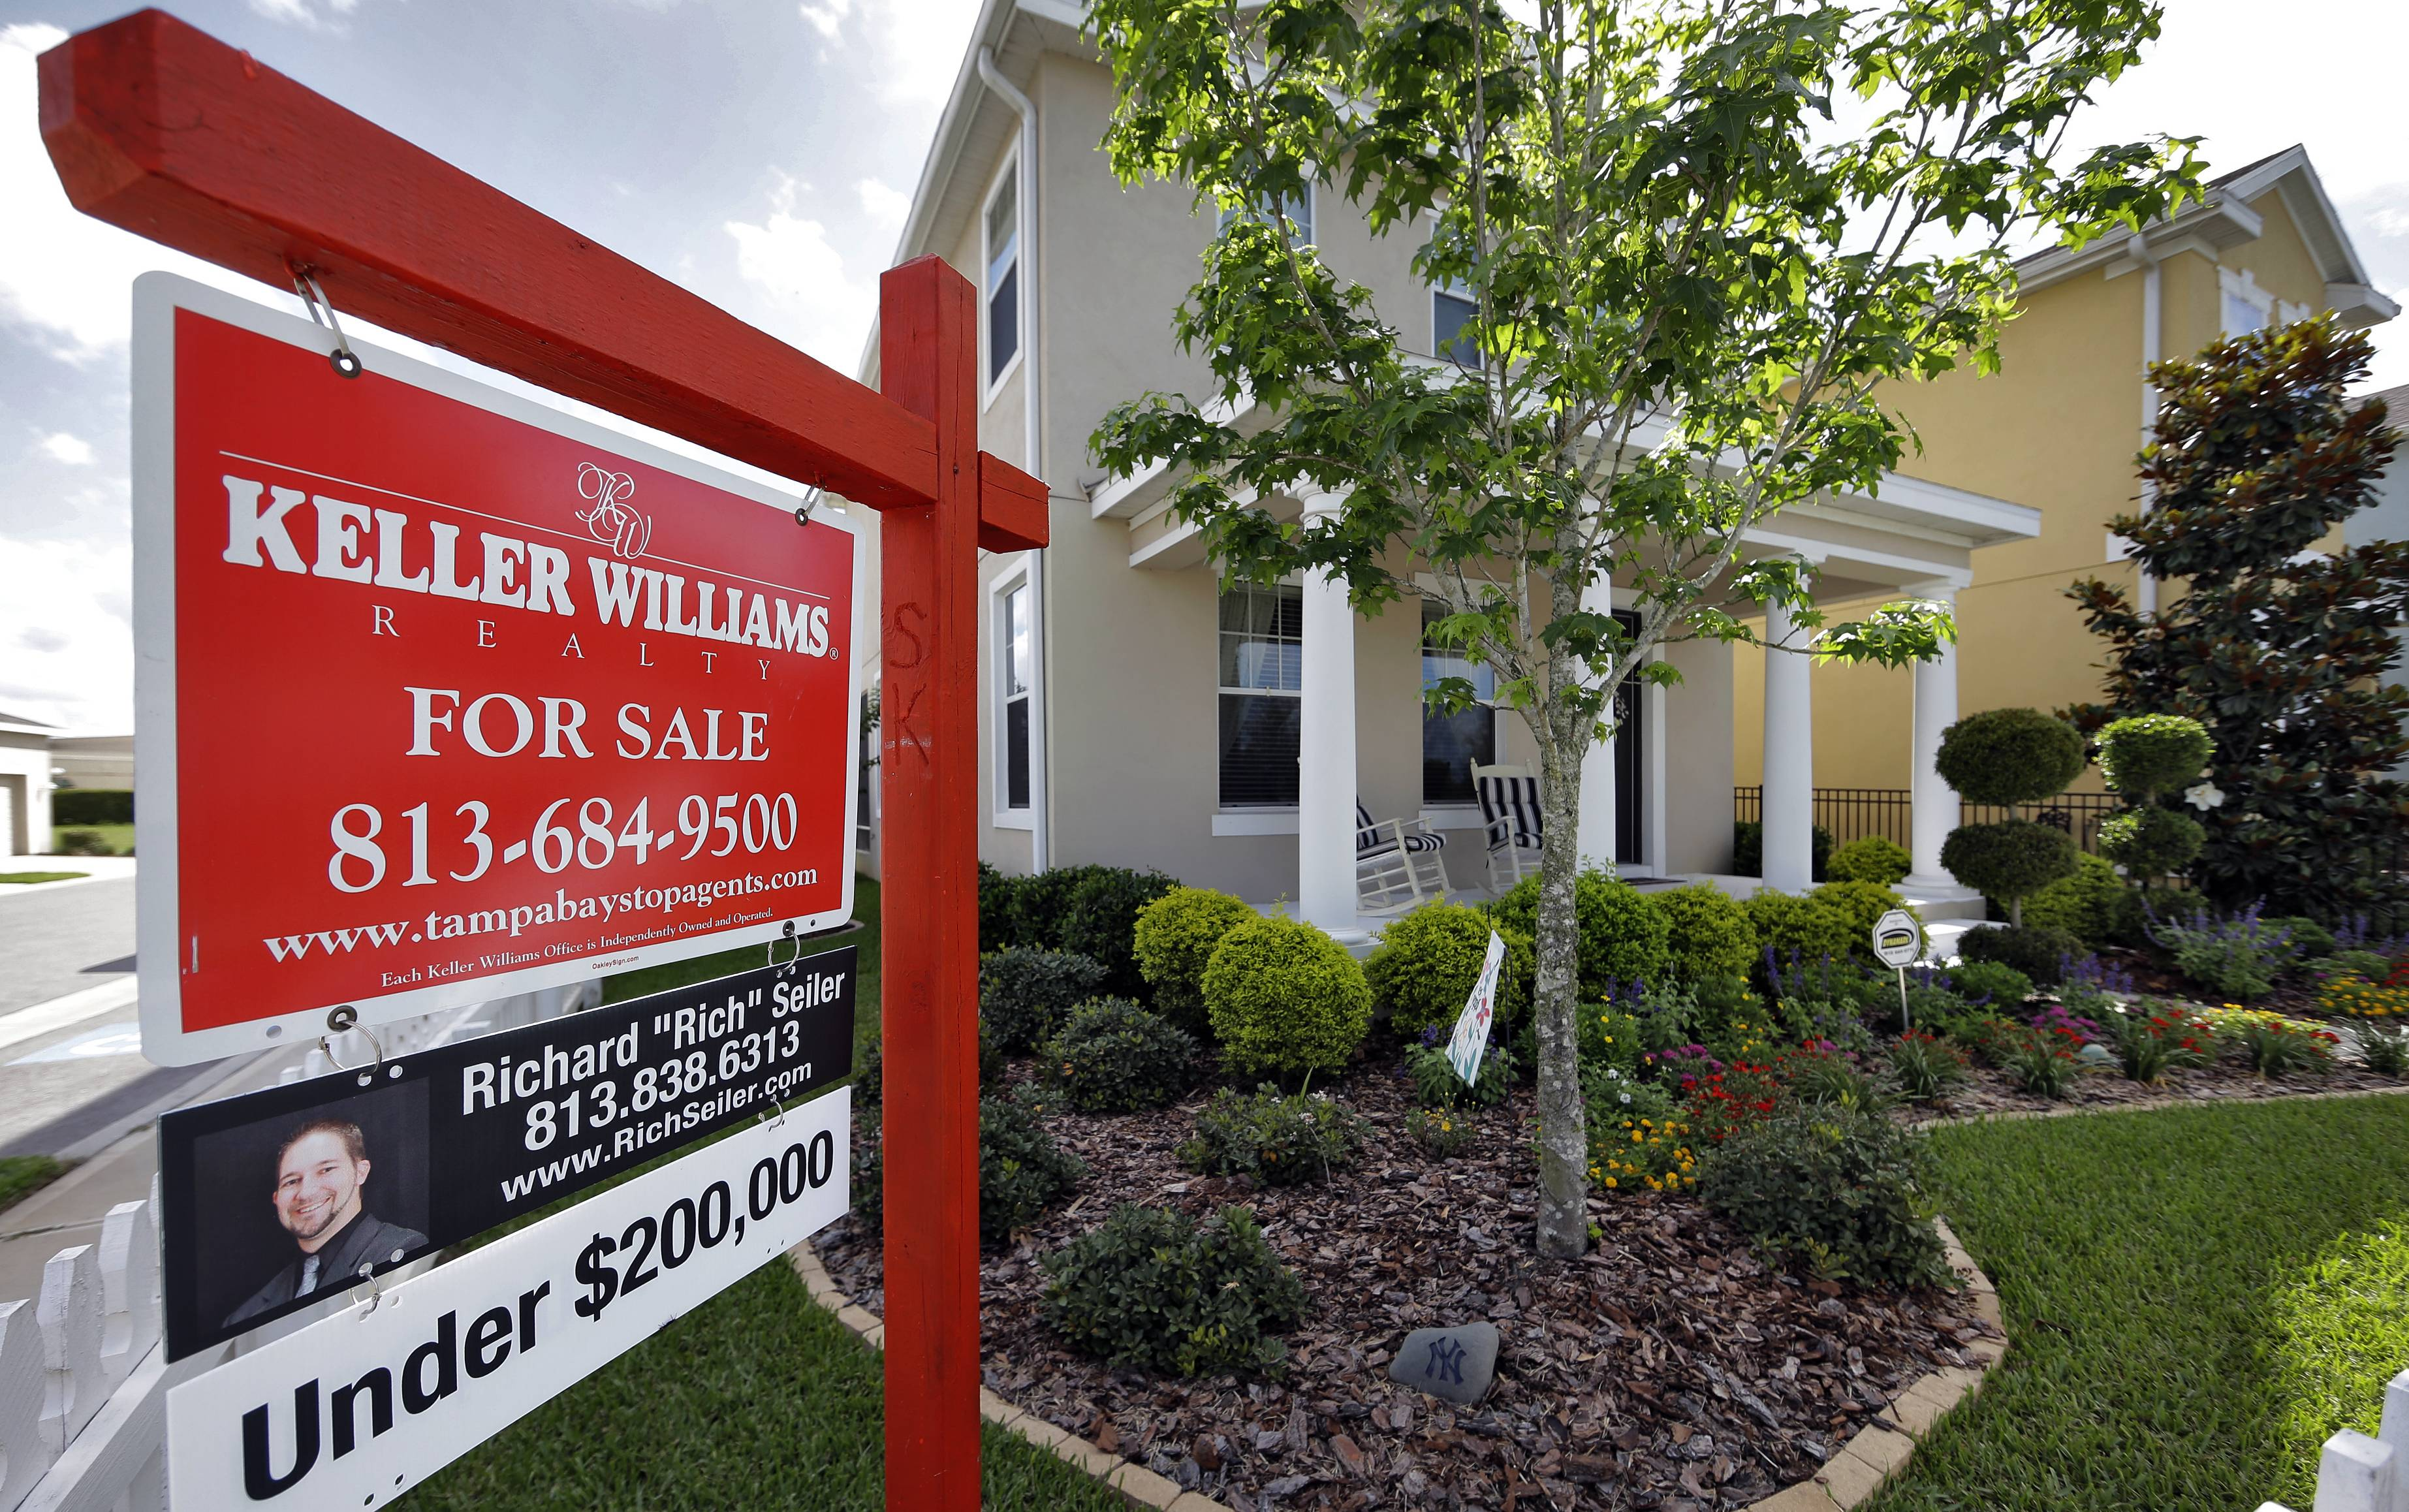 Mortgage applications in the U.S. declined as fewer Americans refinanced their homes.